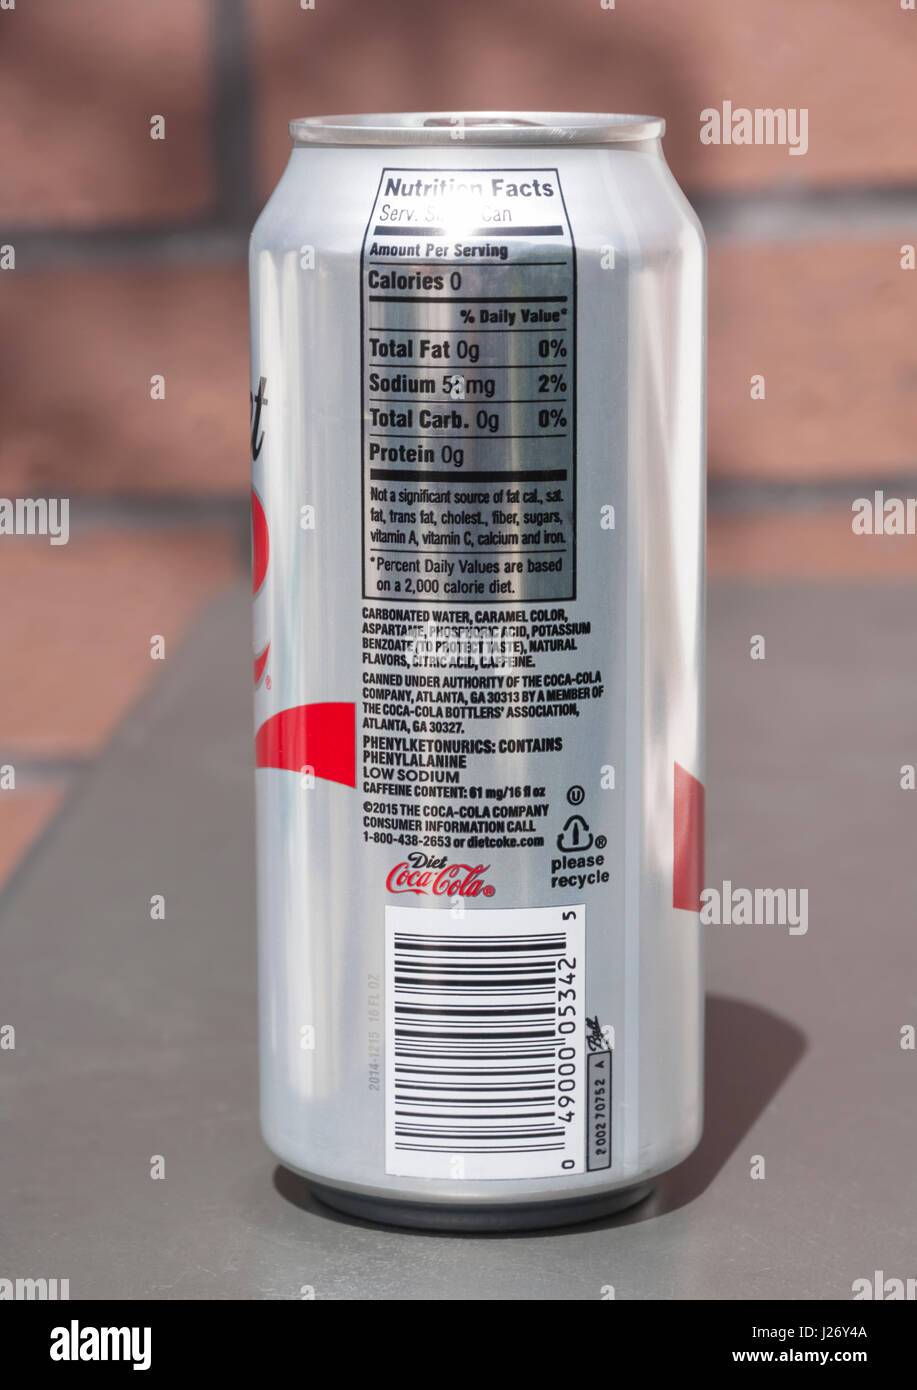 soft drink can label stock photos & soft drink can label stock